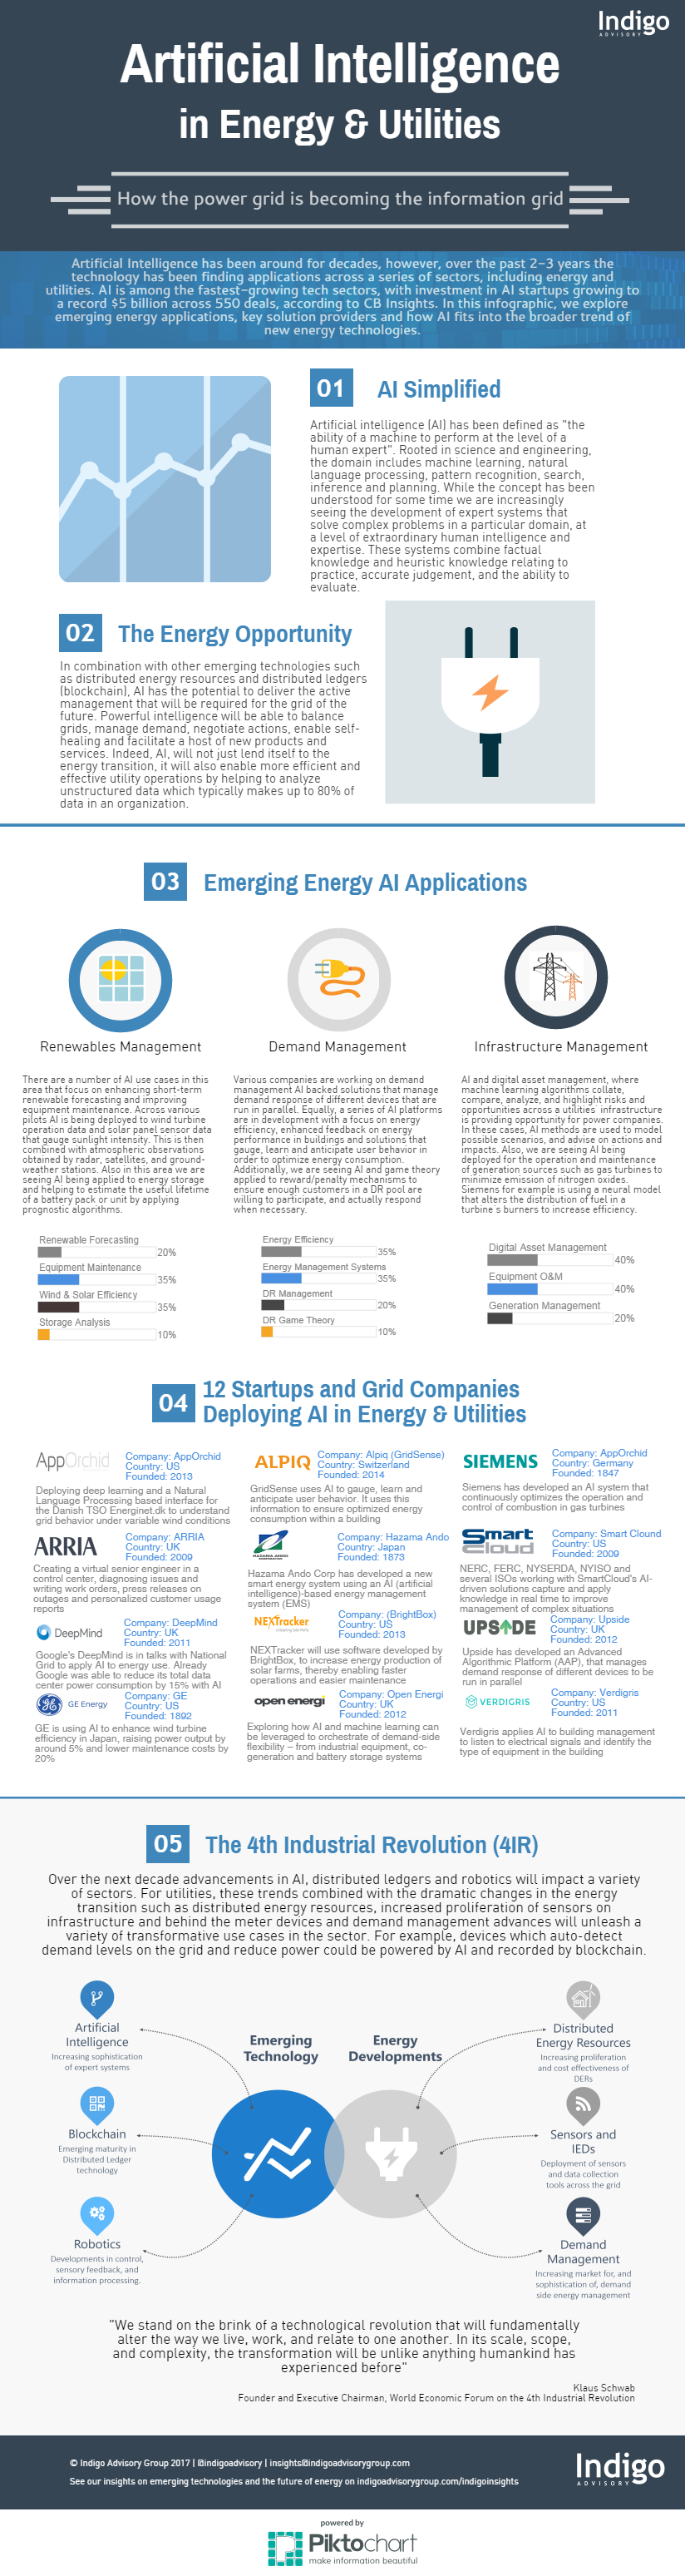 Artificial Intelligence in Energy and Utilities Infographic